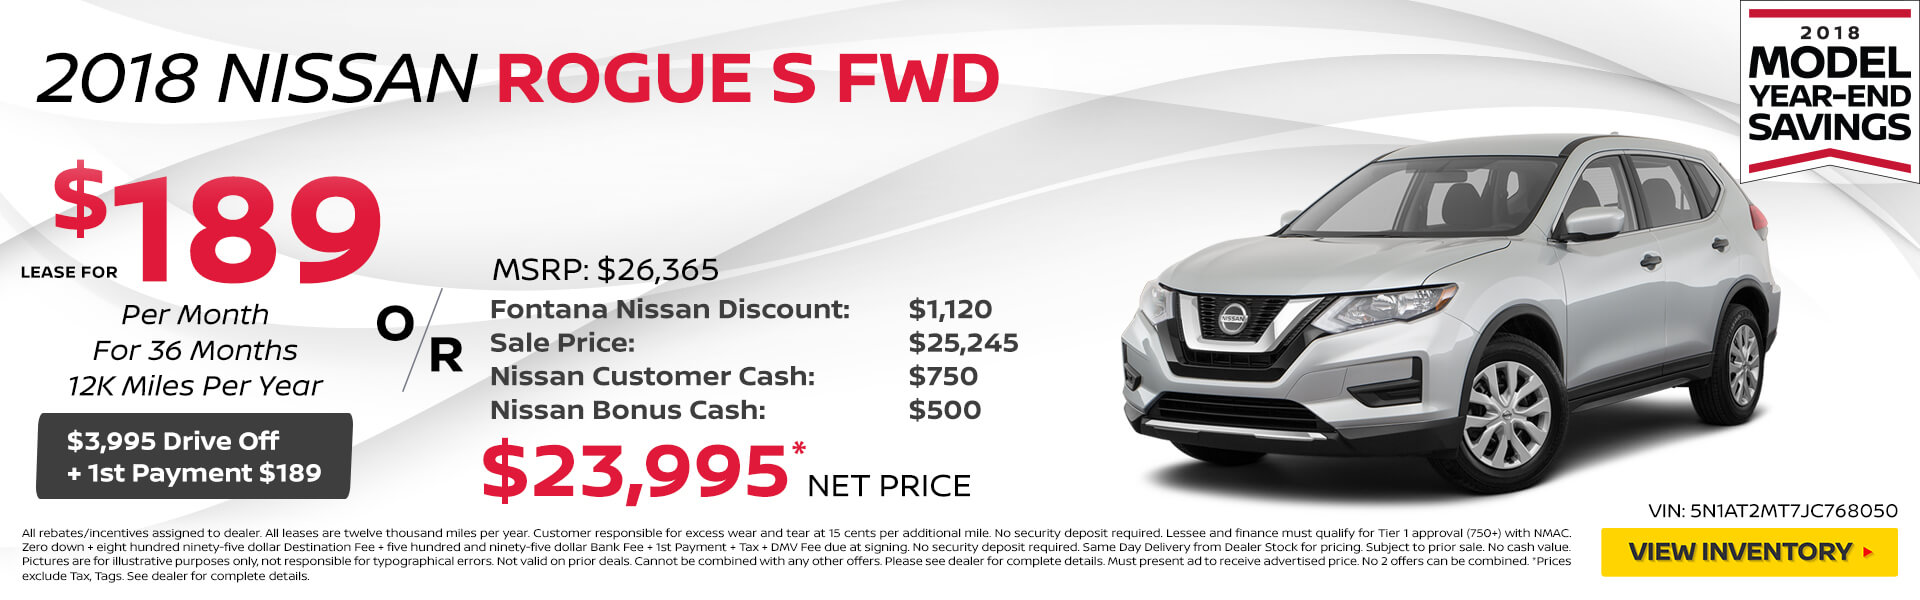 Nissan Rogue $189 Lease or $23,995 Purchase